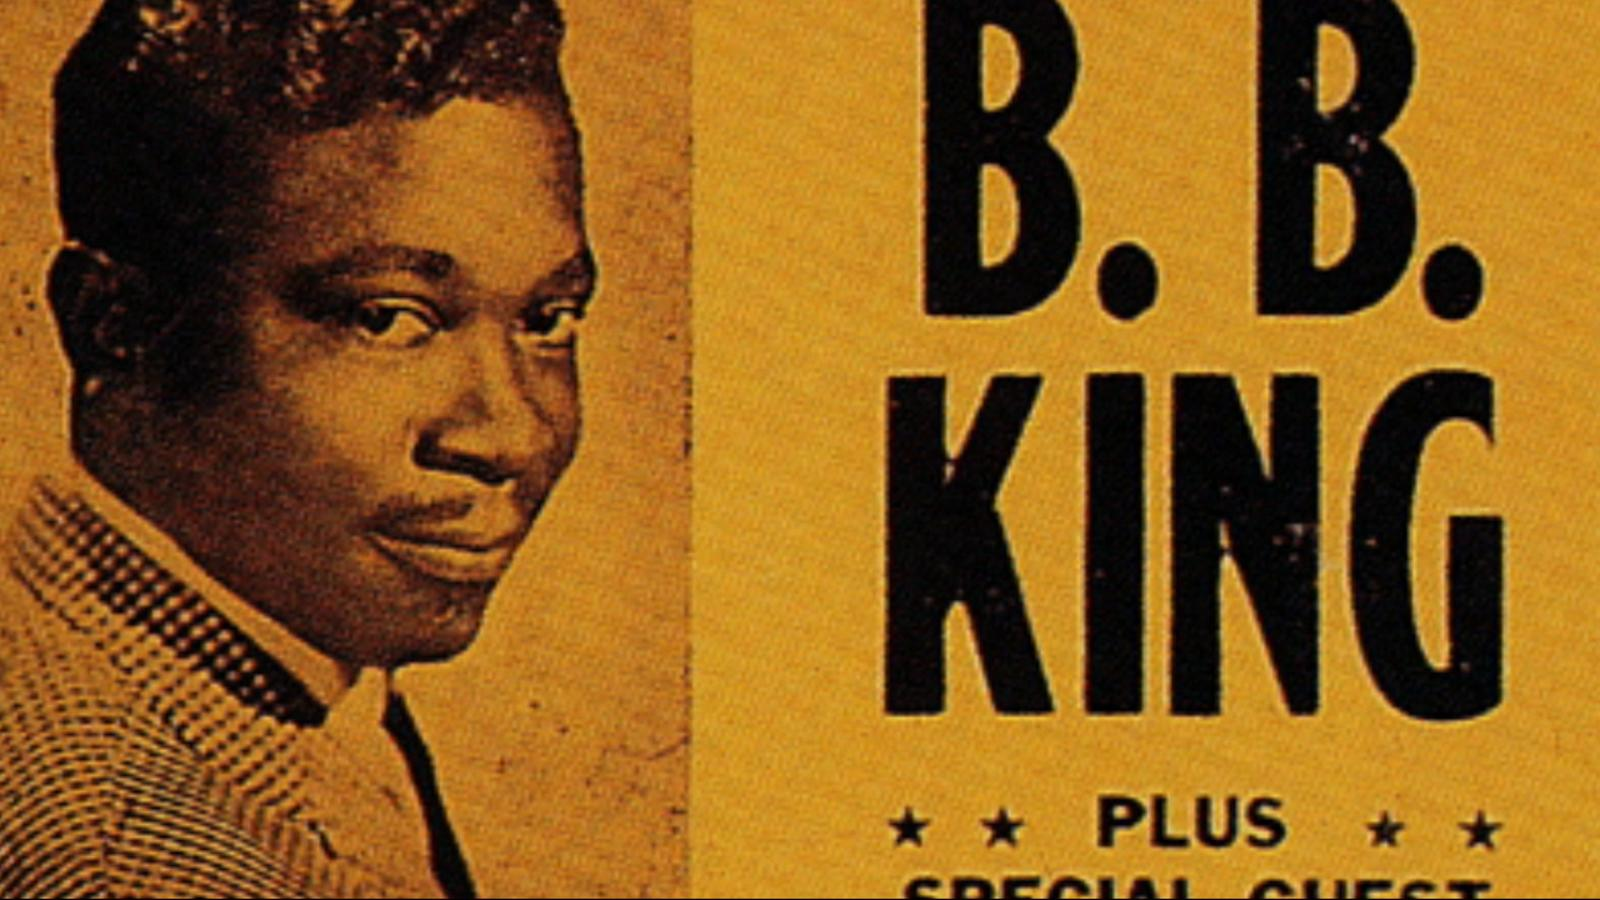 B B King Photos And Images